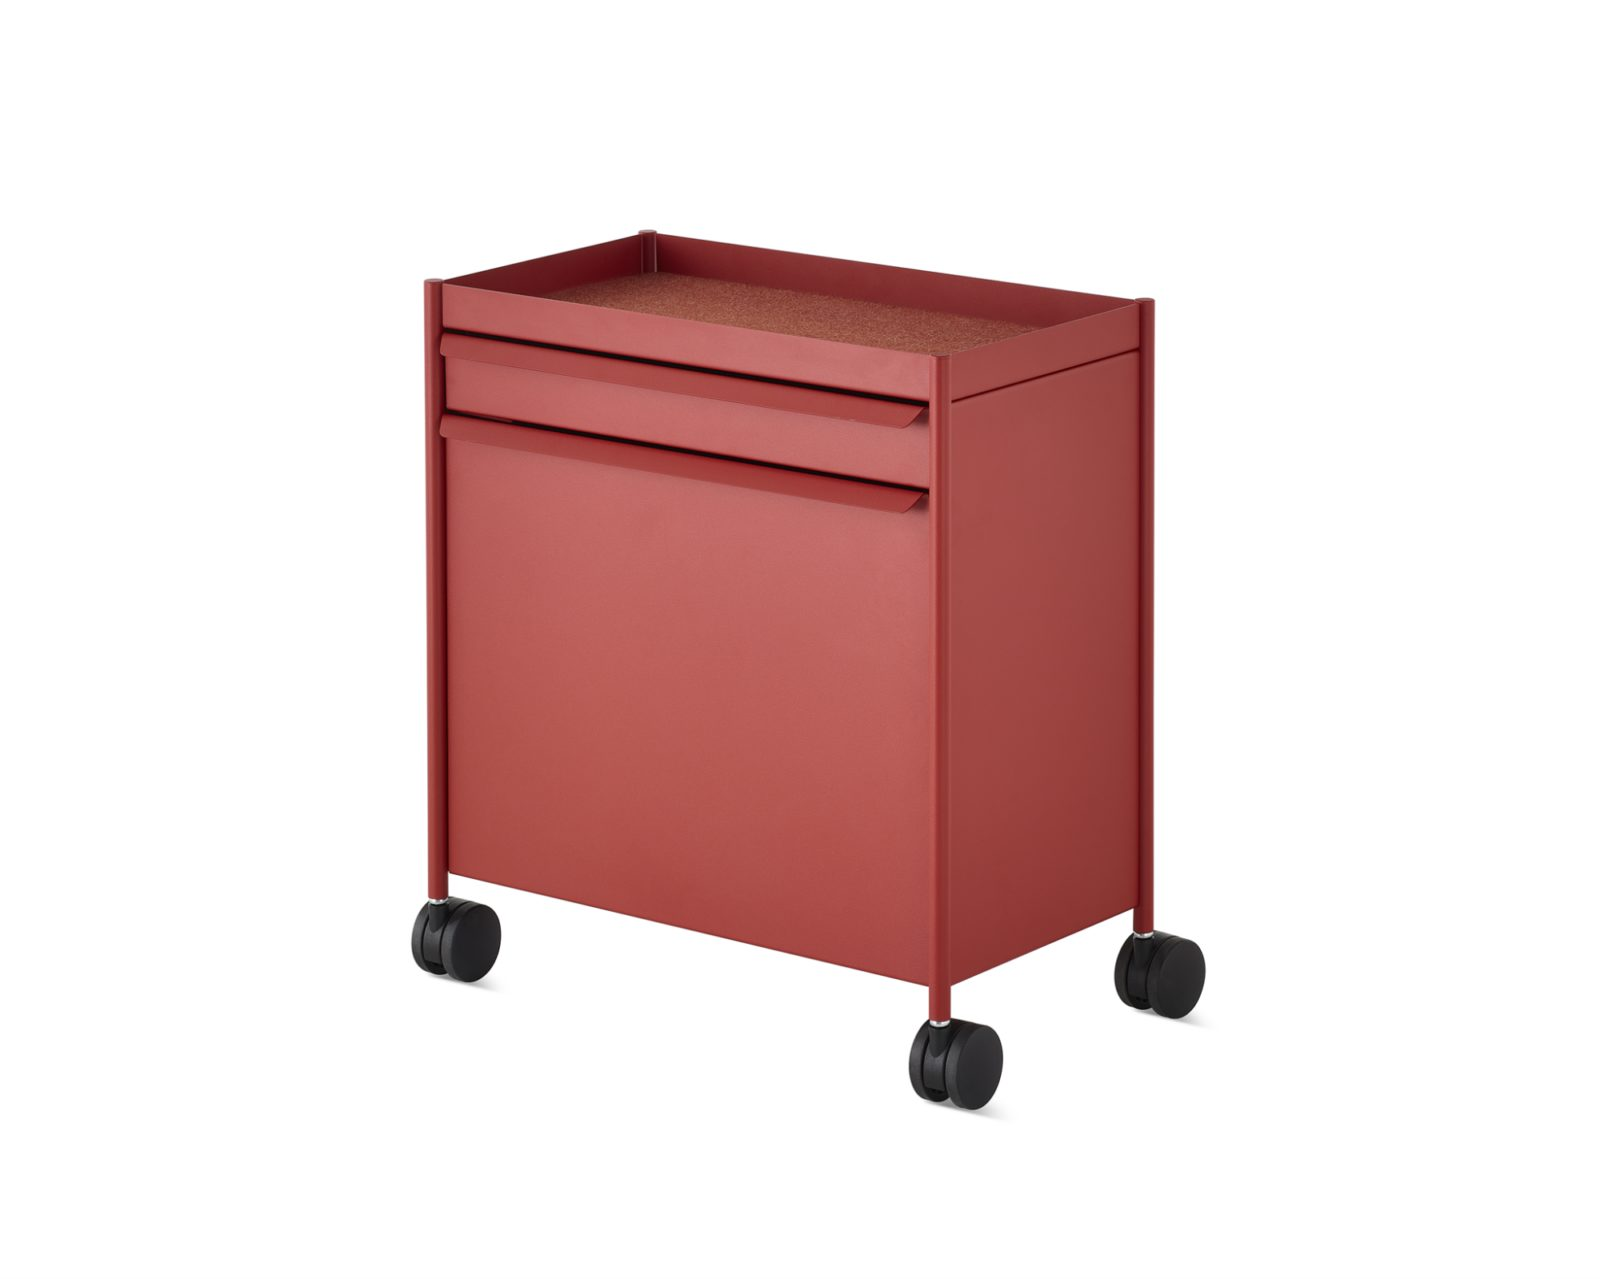 A red mobile OE1 Storage Trolley with an open top, top drawer, and bottom tip-out bin.